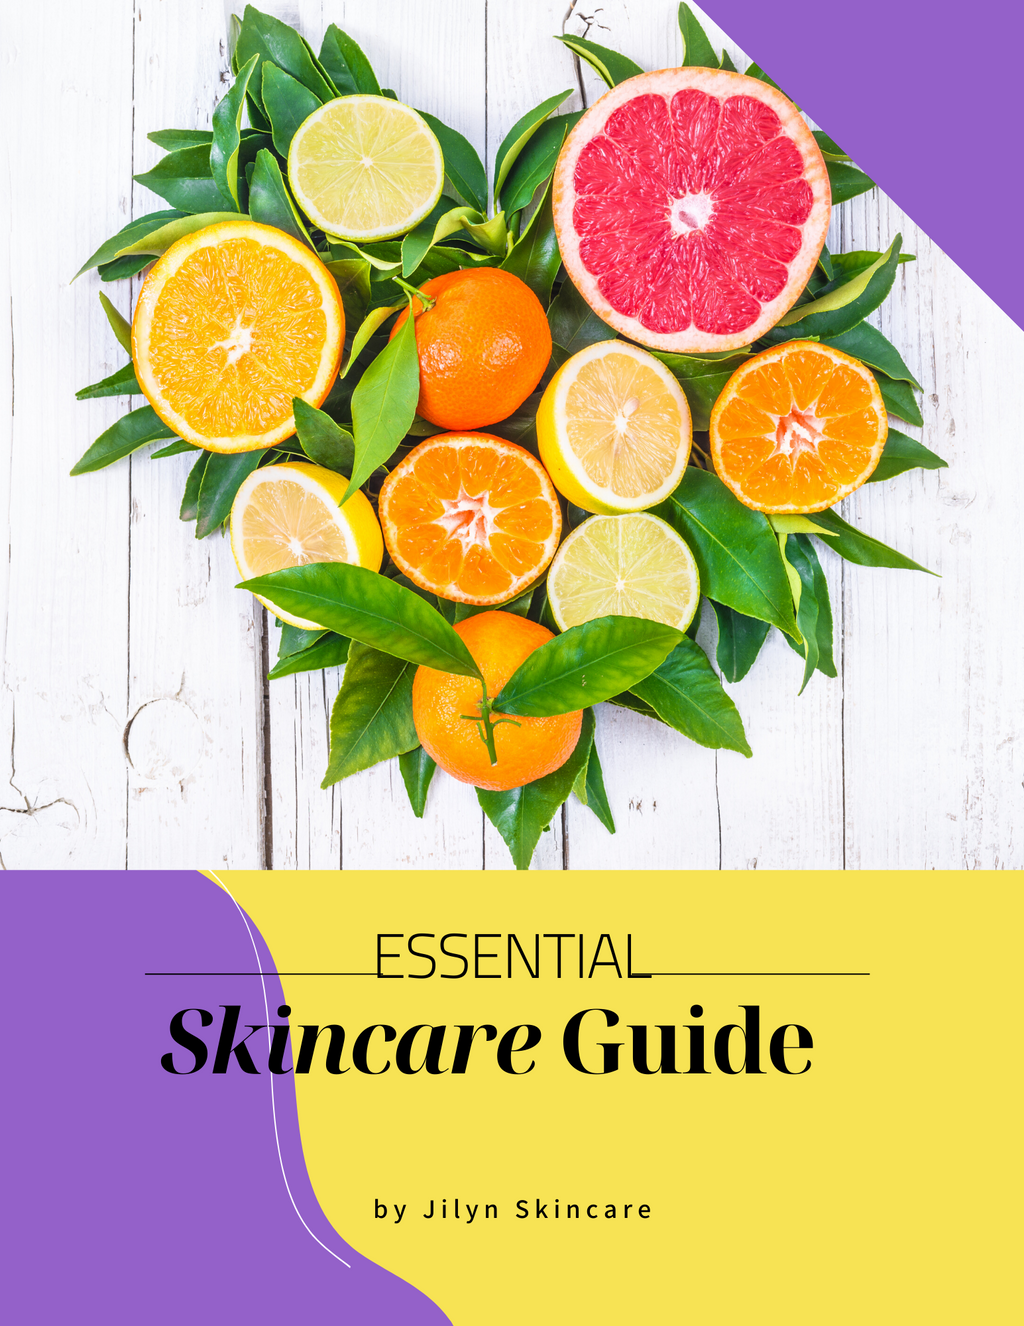 Essential Skincare Guide